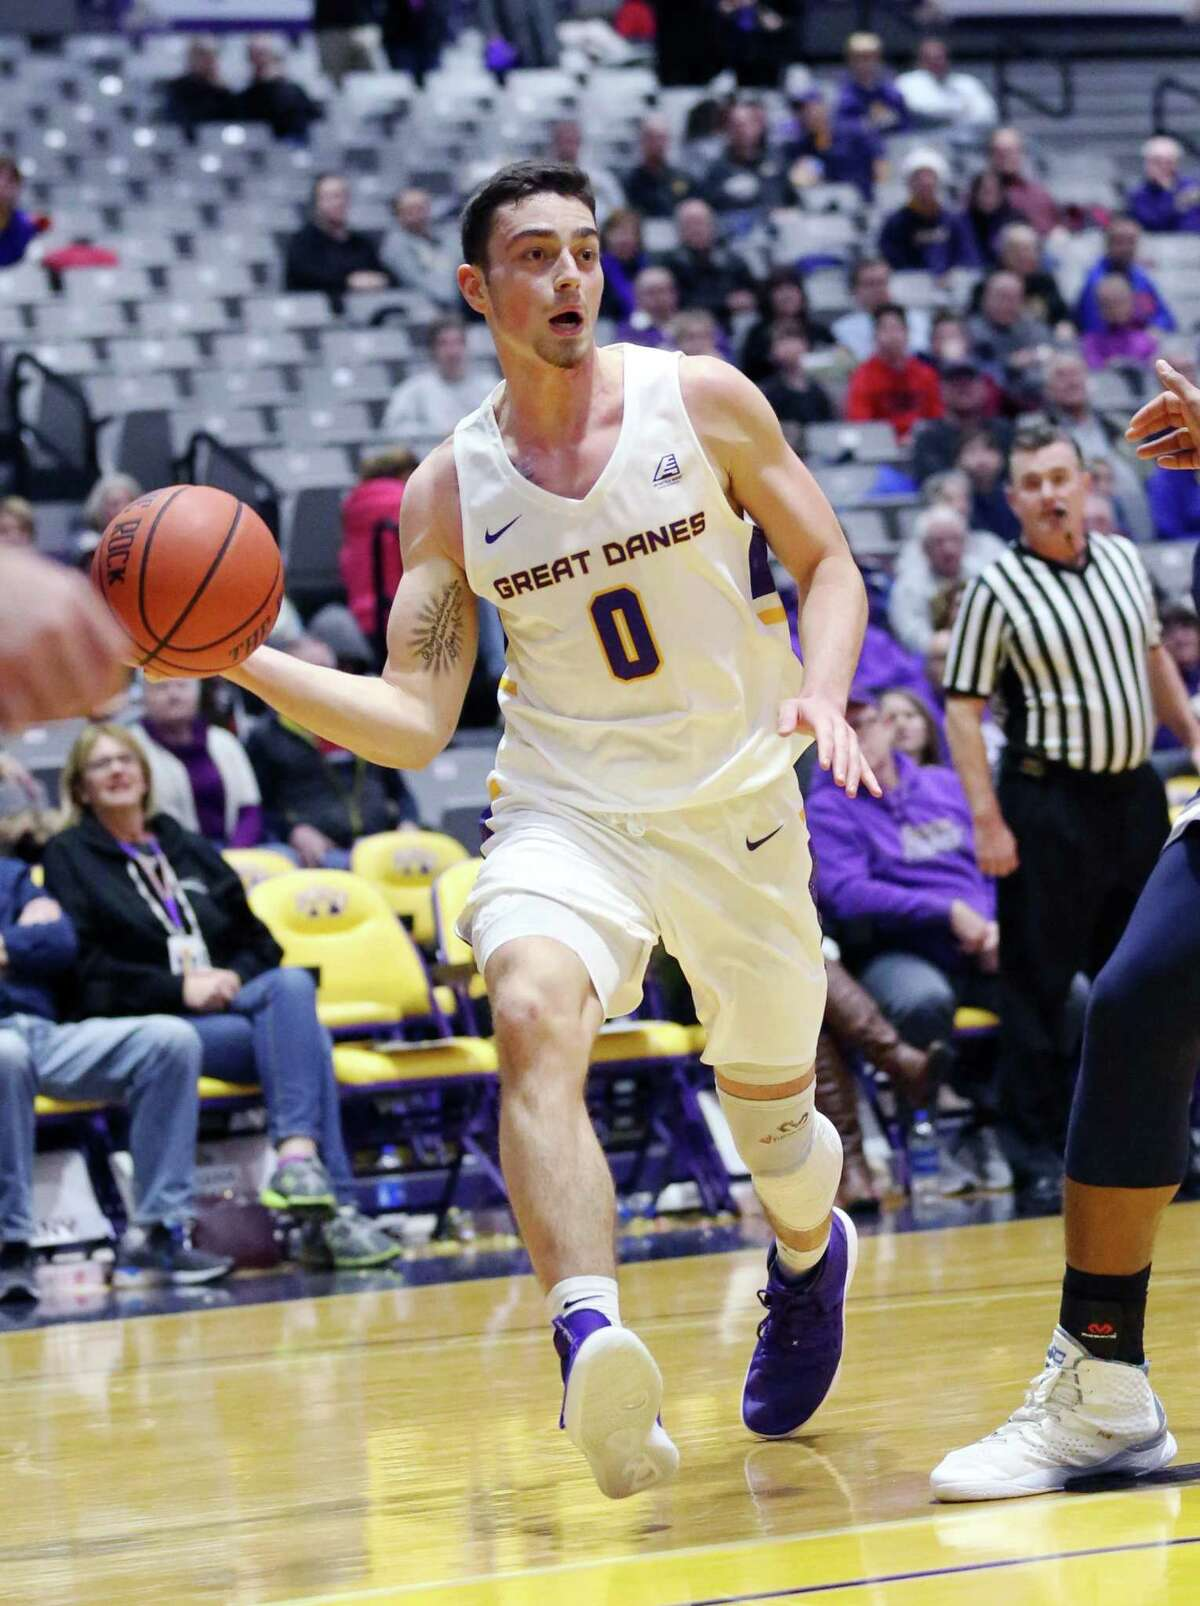 UAlbany guard Antonio Rizzuto passes the ball during a game against Monmouth Saturday Dec. 8, 2018 at the SEFCU Arena. (Phoebe Sheehan/Special to The Times Union)